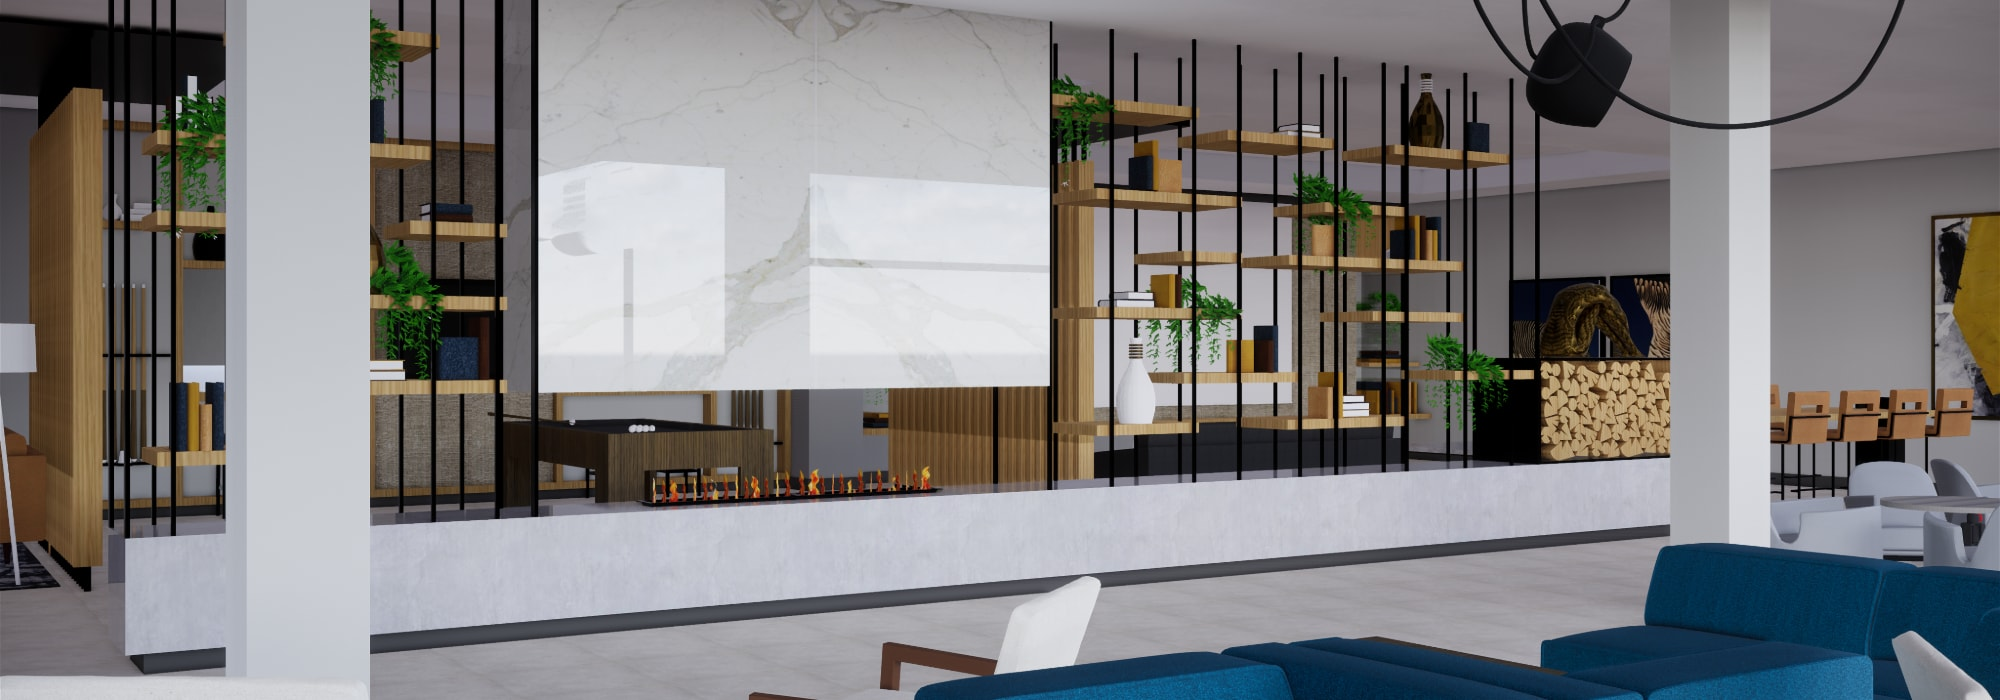 Rendering of movie theater area for residents at The Piedmont in Tempe, Arizona